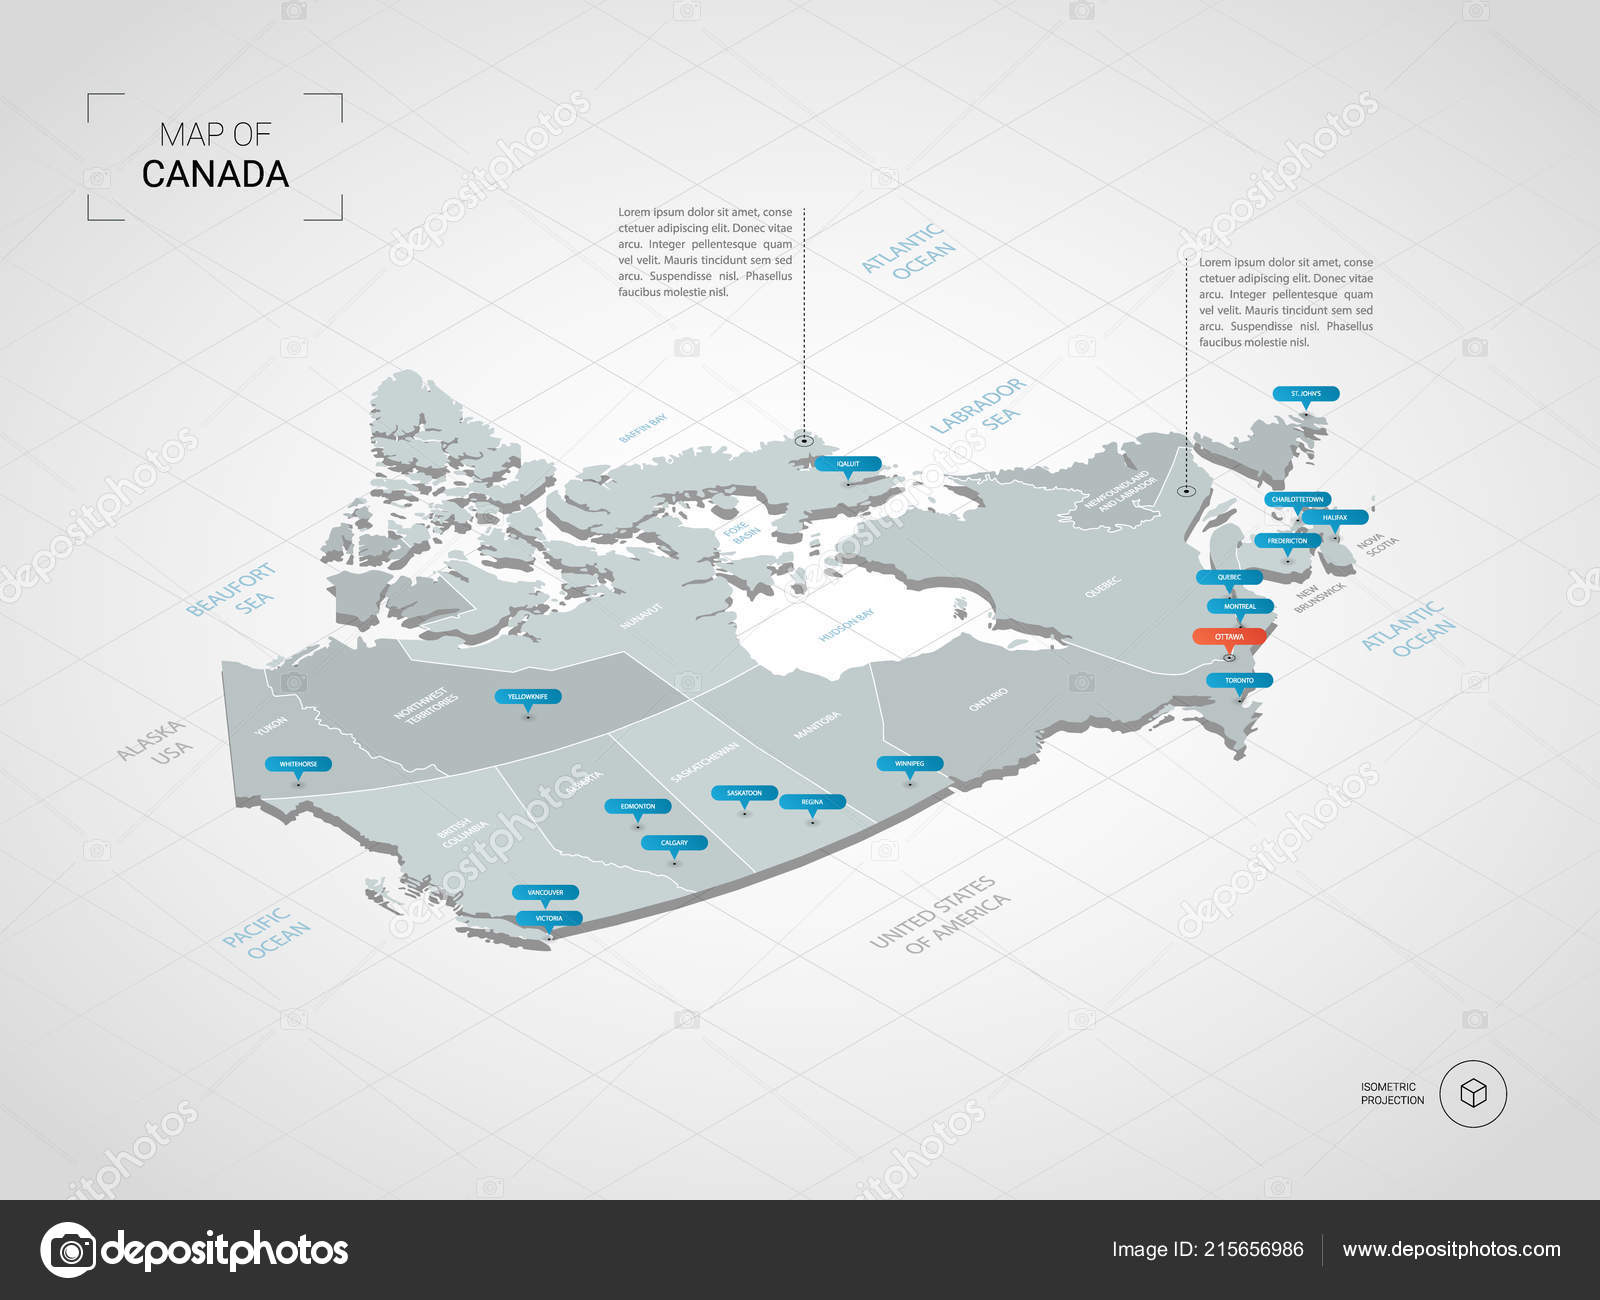 Isometric Canada Map Stylized Vector Map Illustration Cities ... on map of canada first nations tribes, map of canada with cities, map of canada abbreviations, canada map with states and capitals, map of canada provinces, u.s. map capitals, map of downtown montreal canada hotels, map mexico capitals, map of canada nhl teams, french canada map capitals, map australia capitals, map of canada geographical features, map of quebec and ontario canada, map of us and canada, map of canada landscape, map of canada seas, map of canada new york, map of countries near the netherlands, map of canada languages, map of canada history,